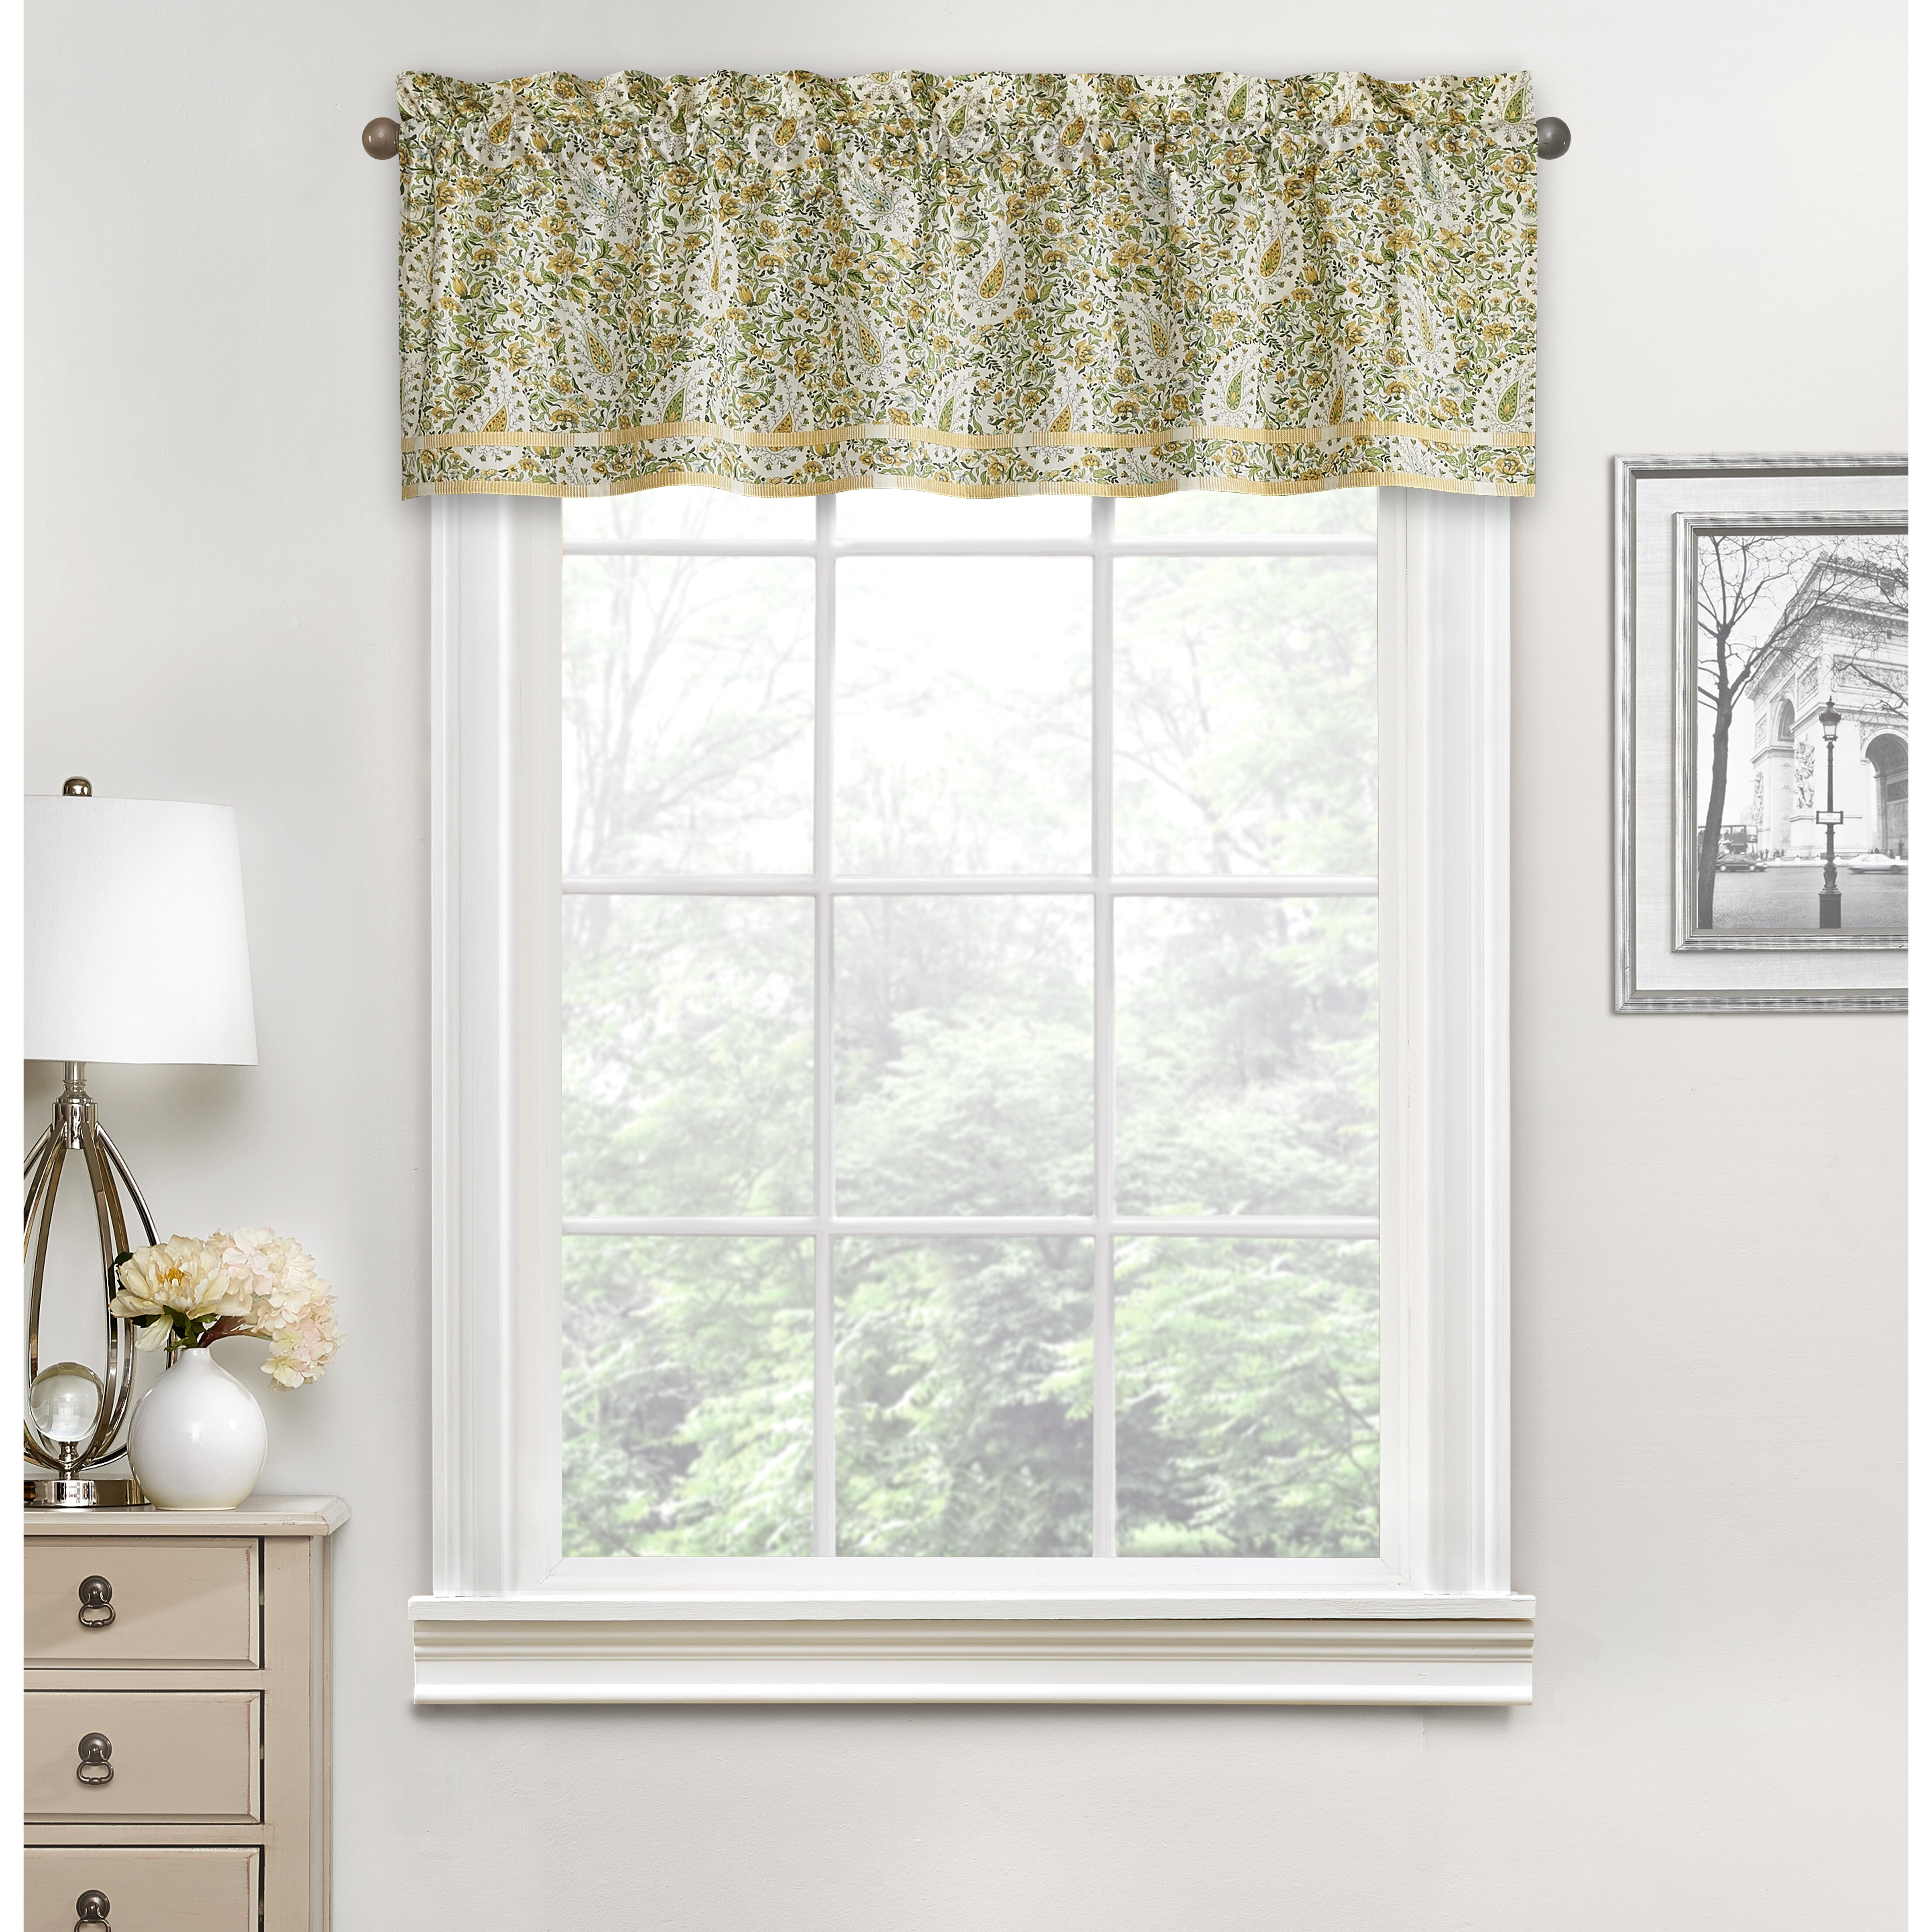 kitchen blinds paisley custom valances drapery panels and shades valance p kaufmann. Black Bedroom Furniture Sets. Home Design Ideas